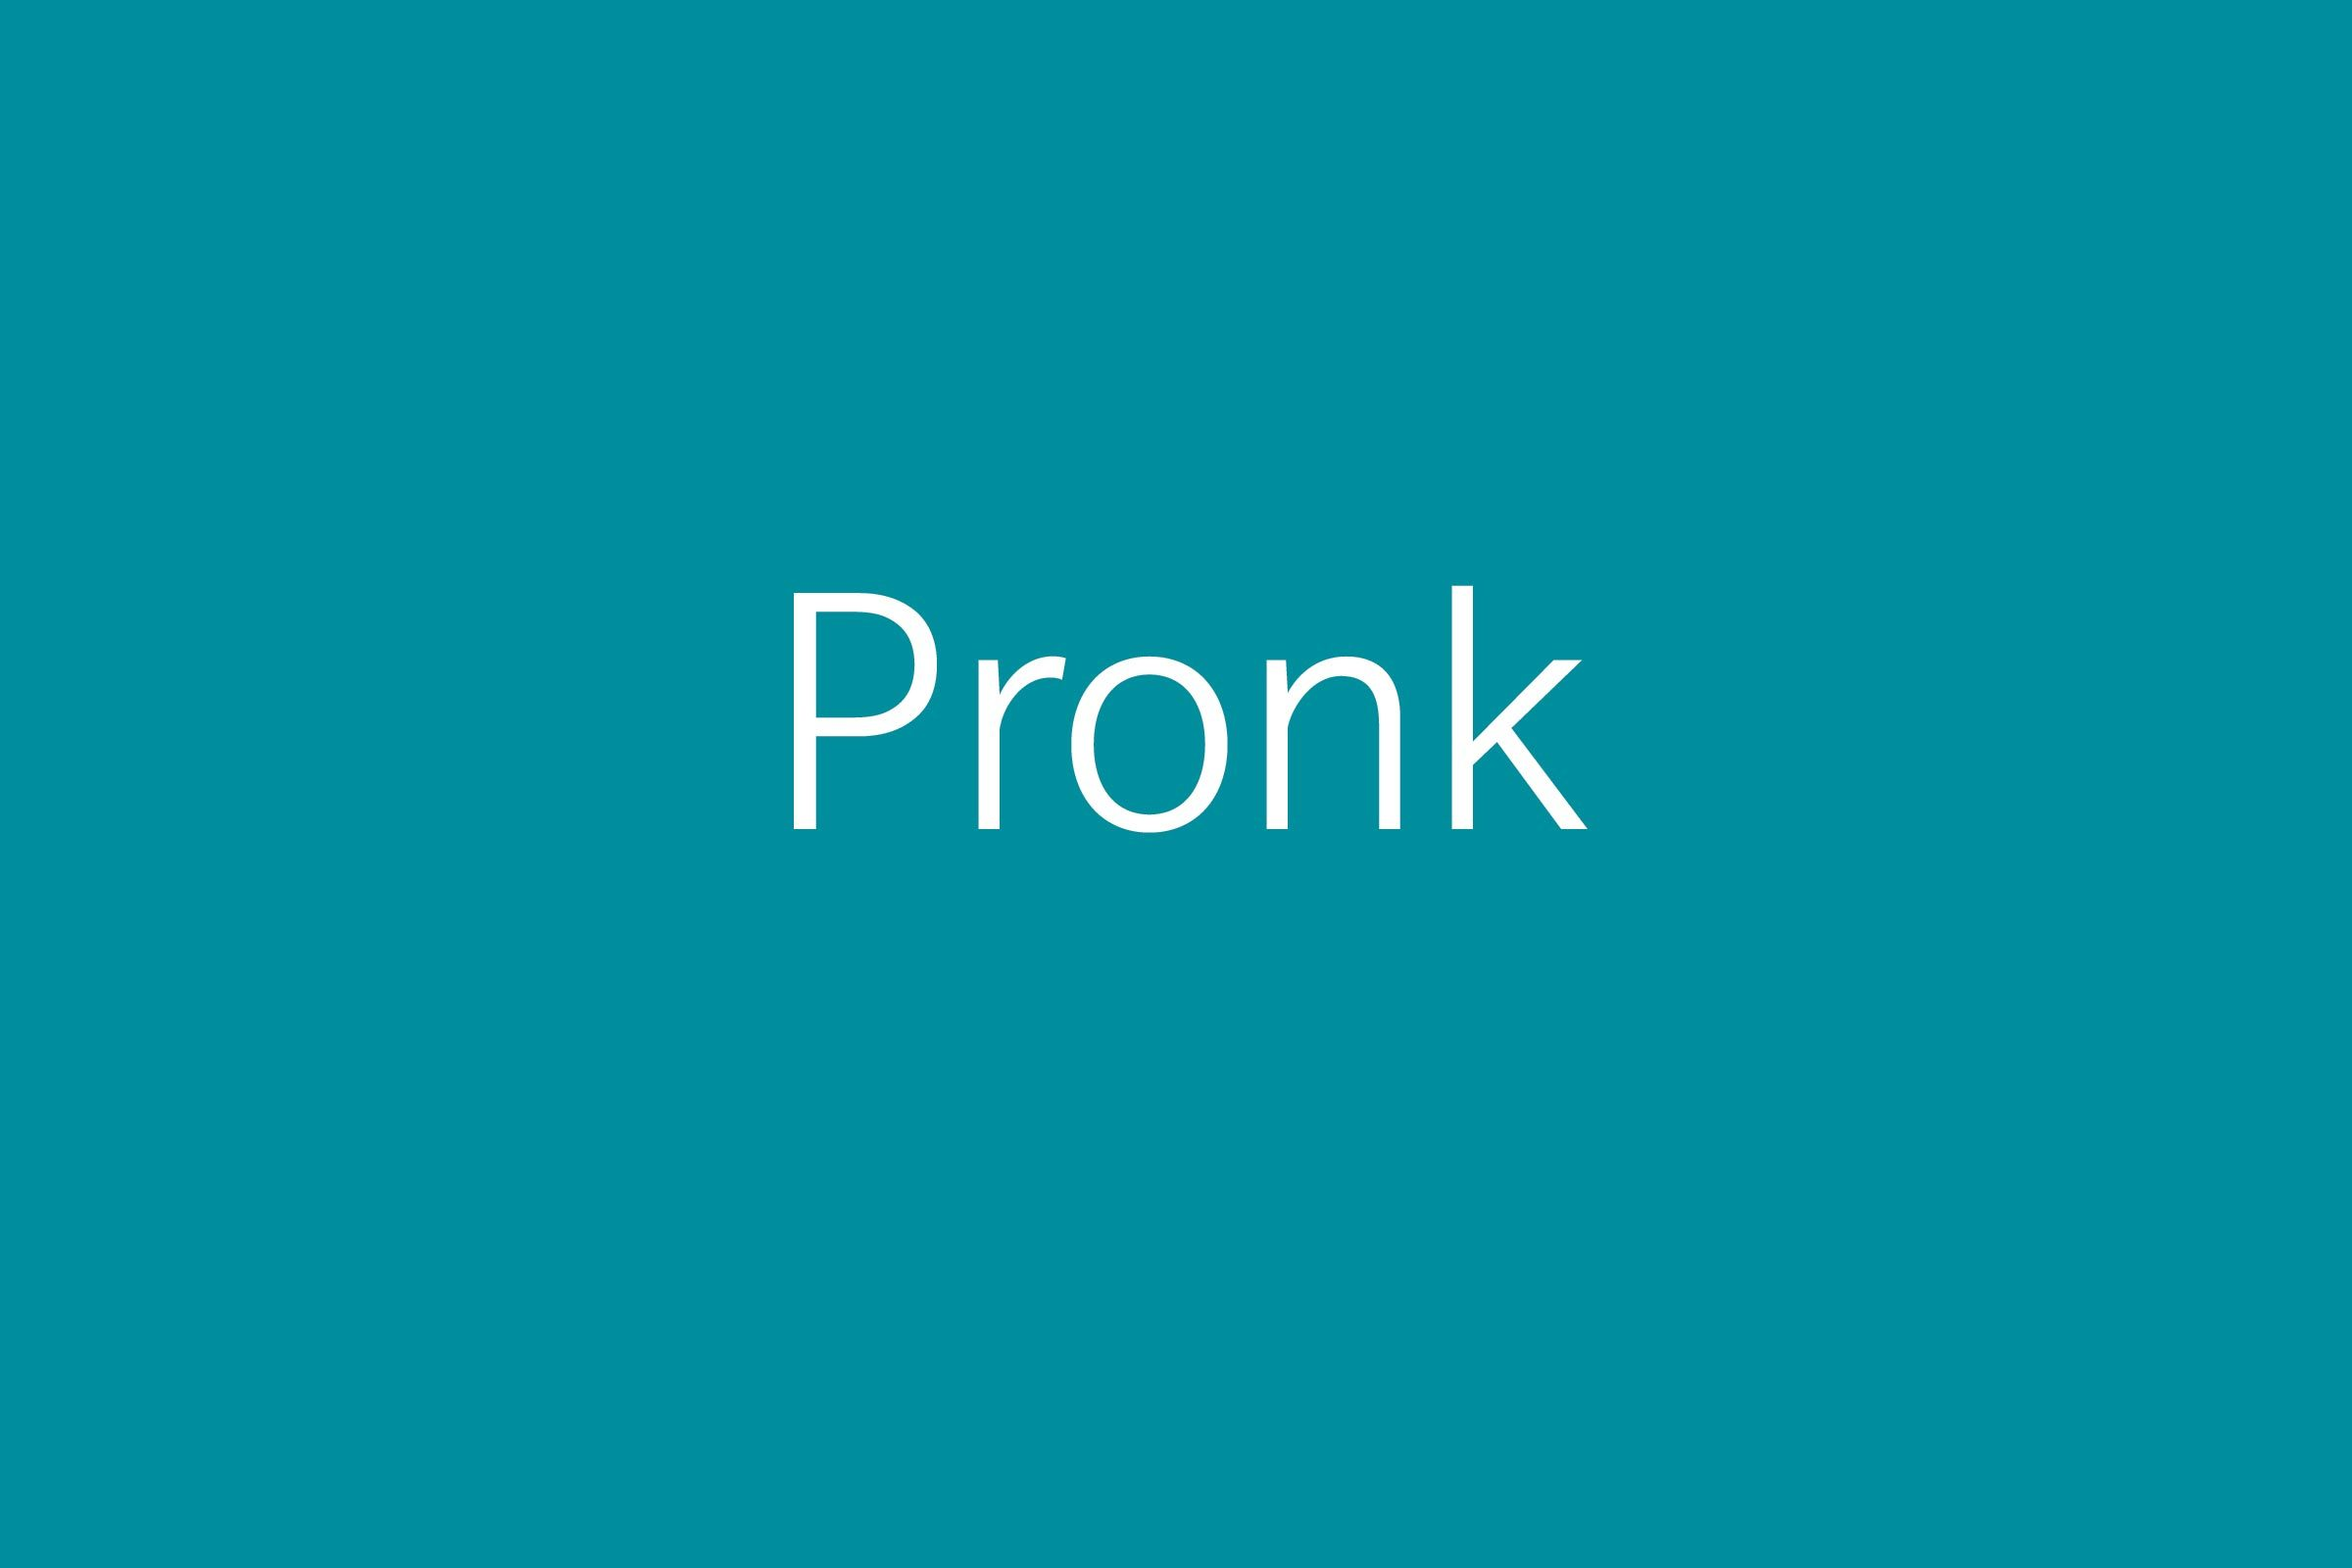 pronk funny word Funny words